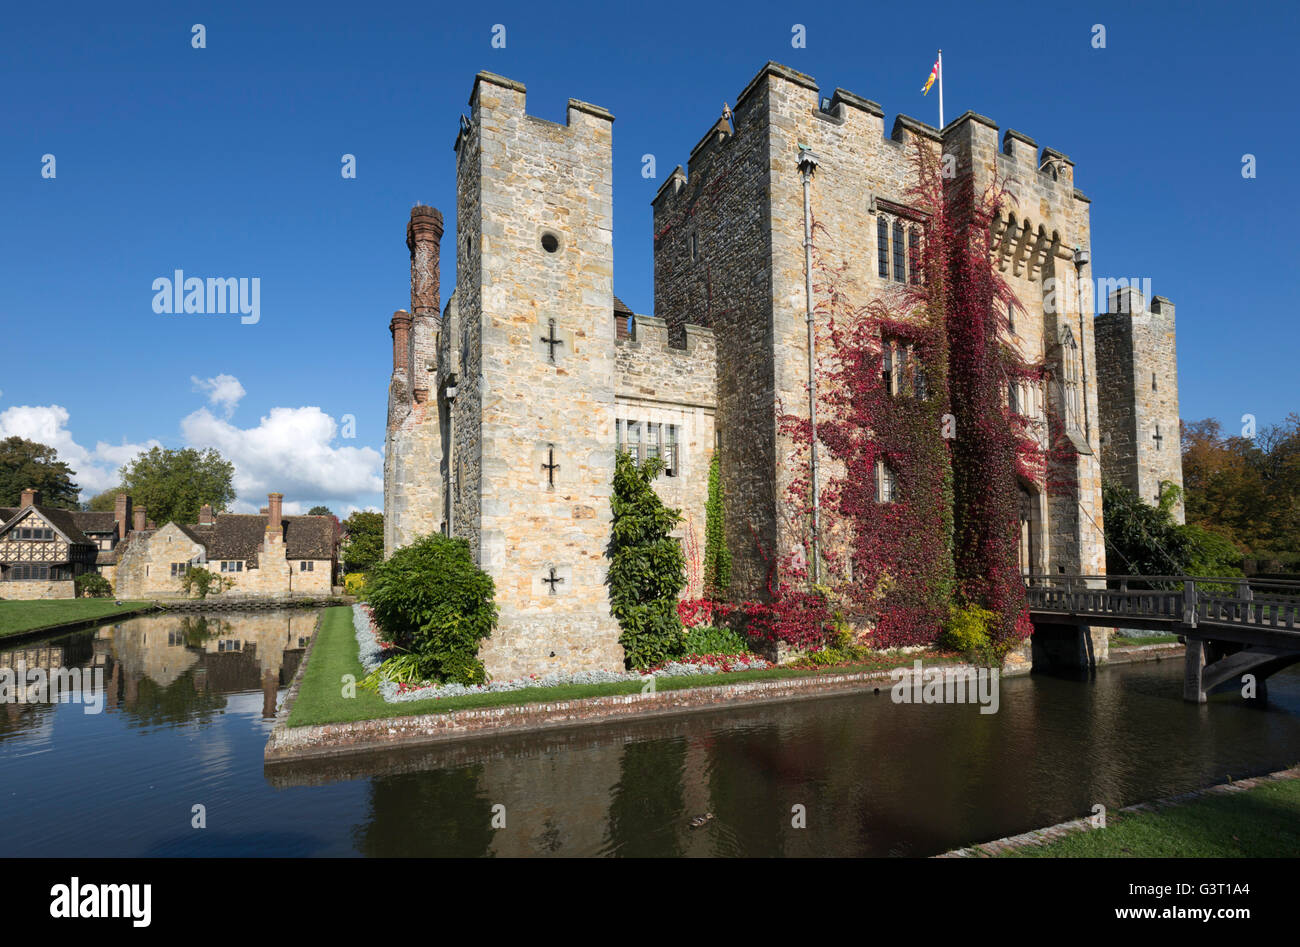 Hever Castle and gardens, Hever, Kent, England, United Kingdom, Europe - Stock Image